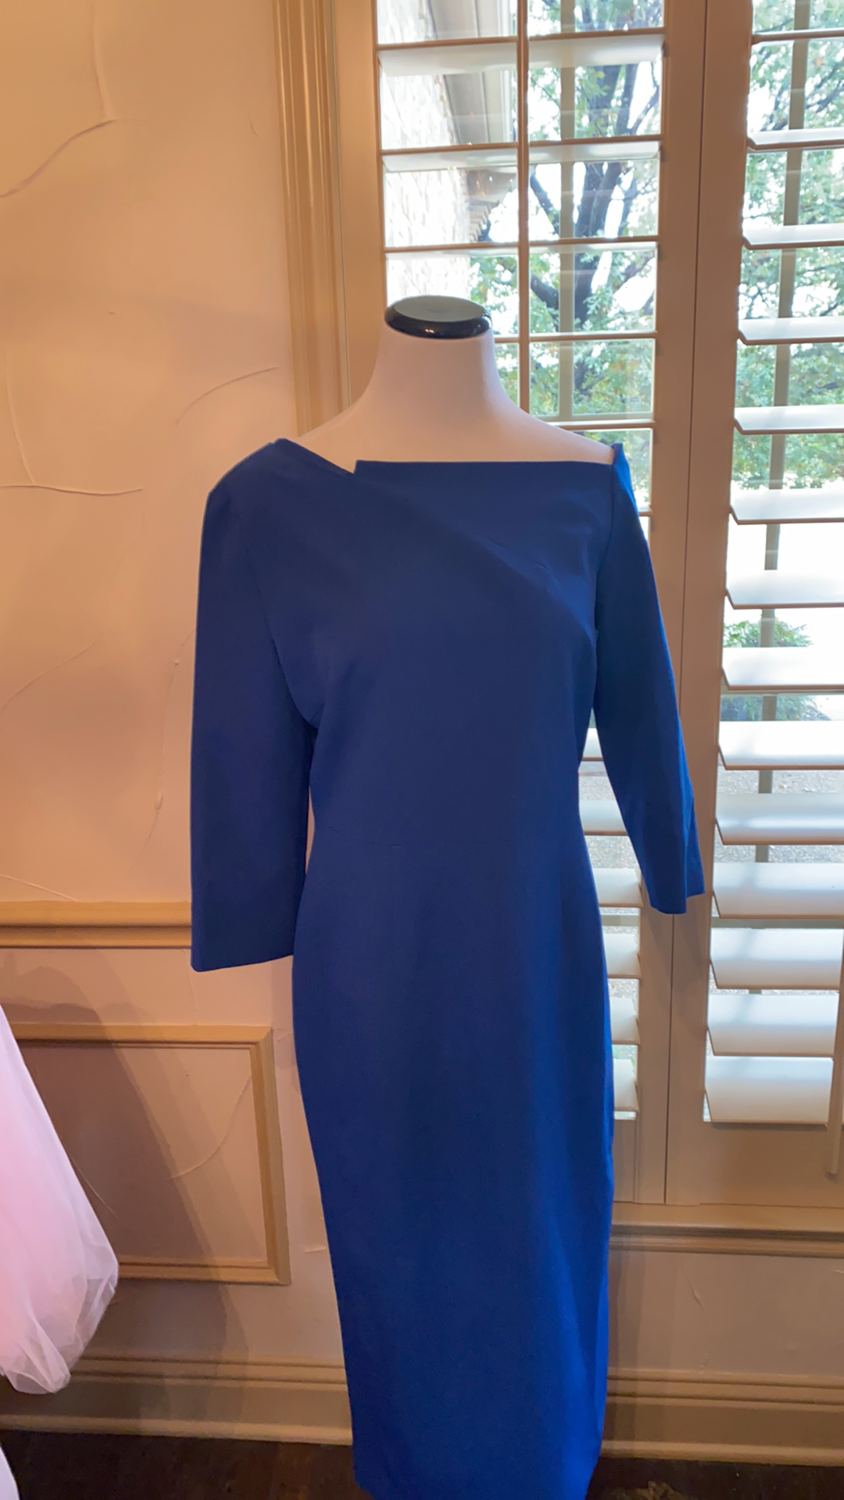 ONLY ONE Blue jersey dress